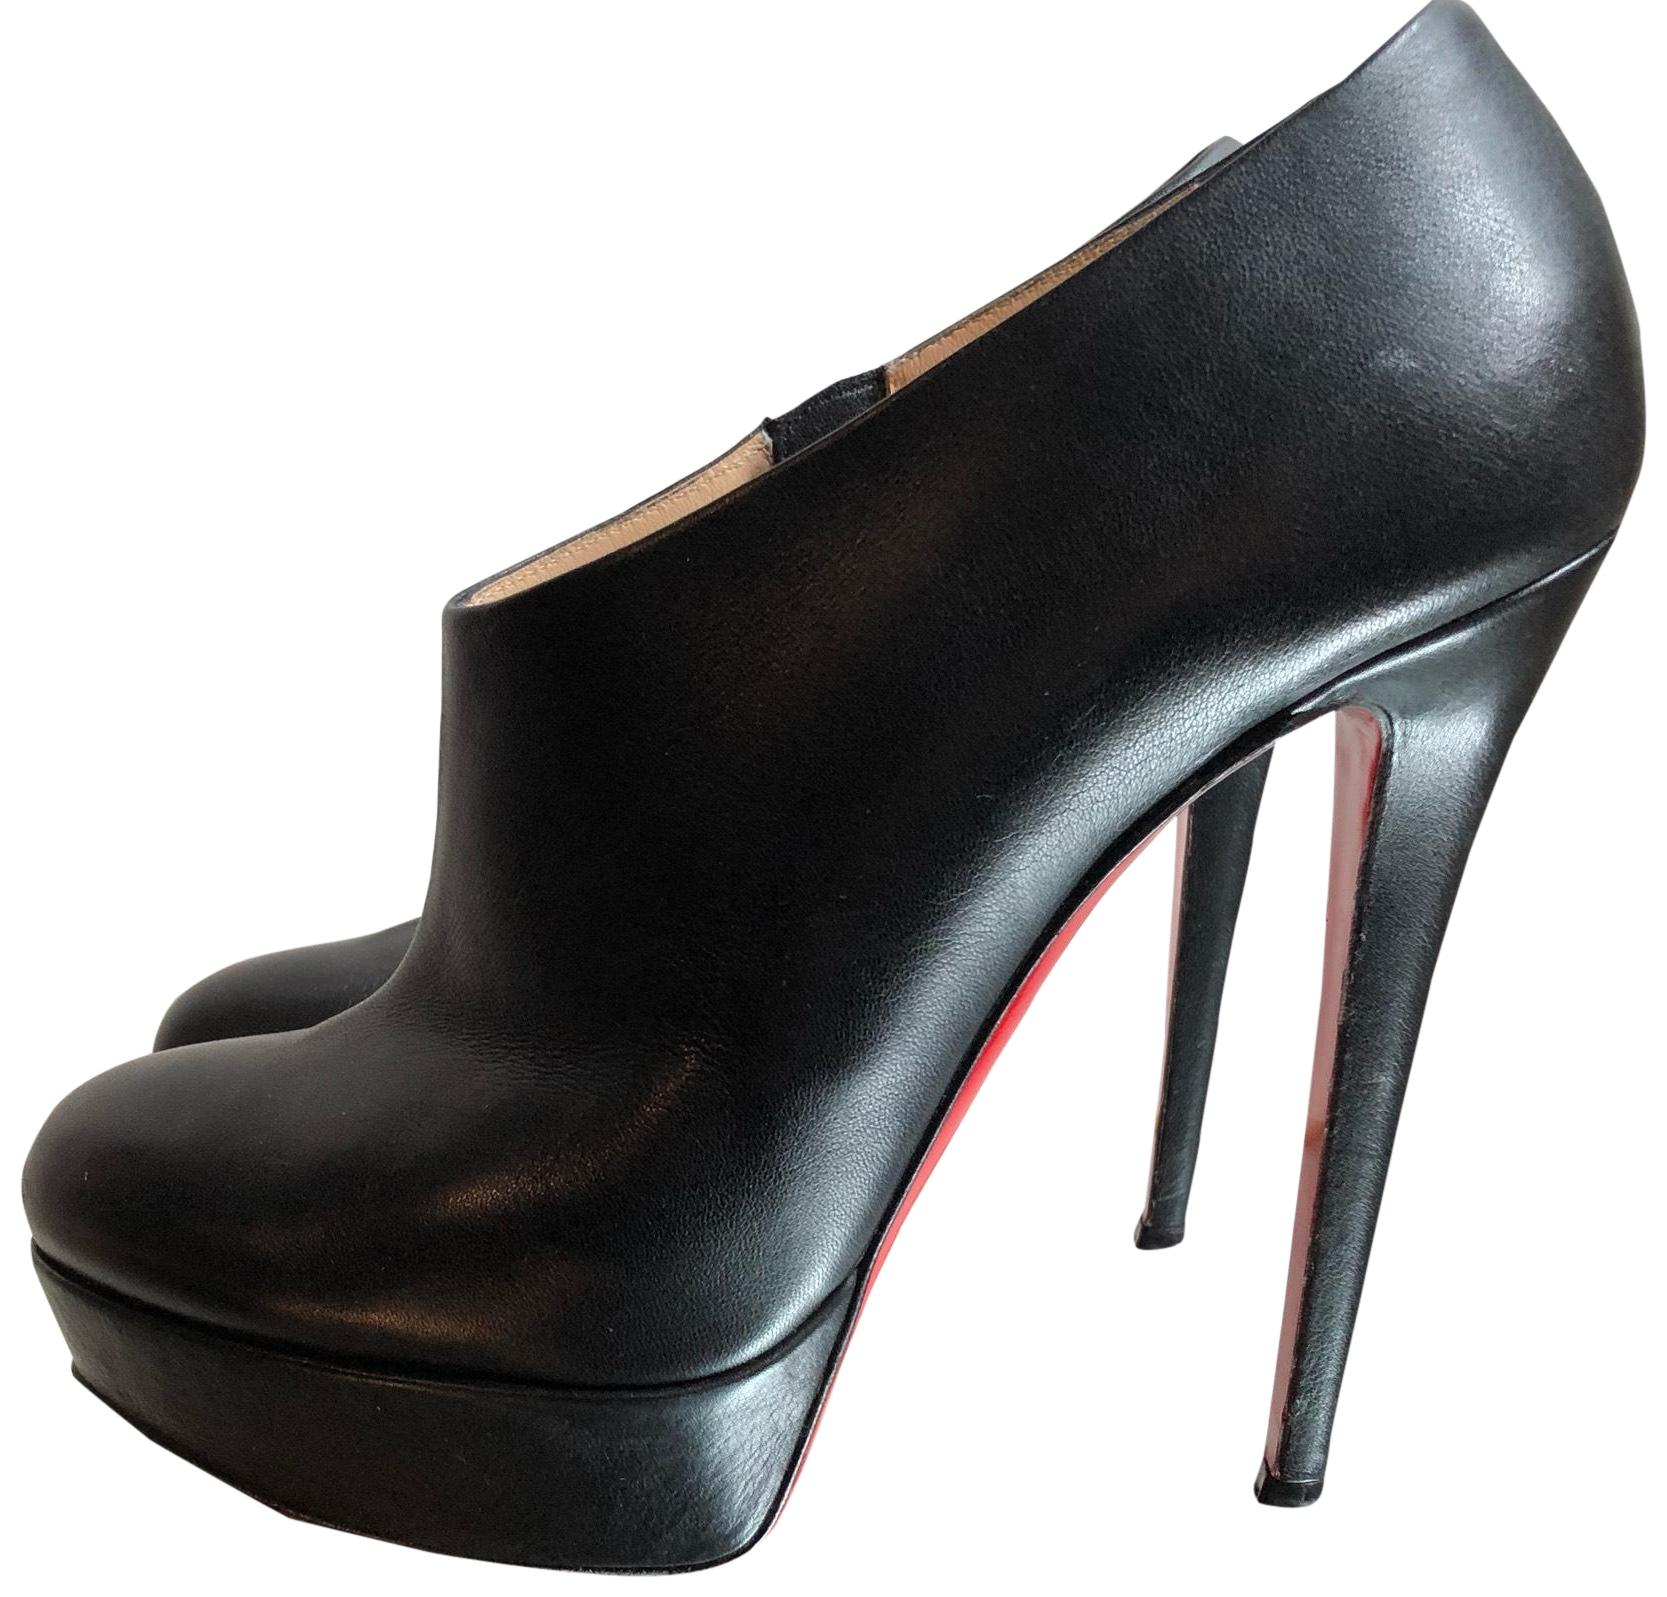 Christian Louboutin Black Moulage 140 Boots/Booties Size EU 40 (Approx. US 10) Regular (M, B)